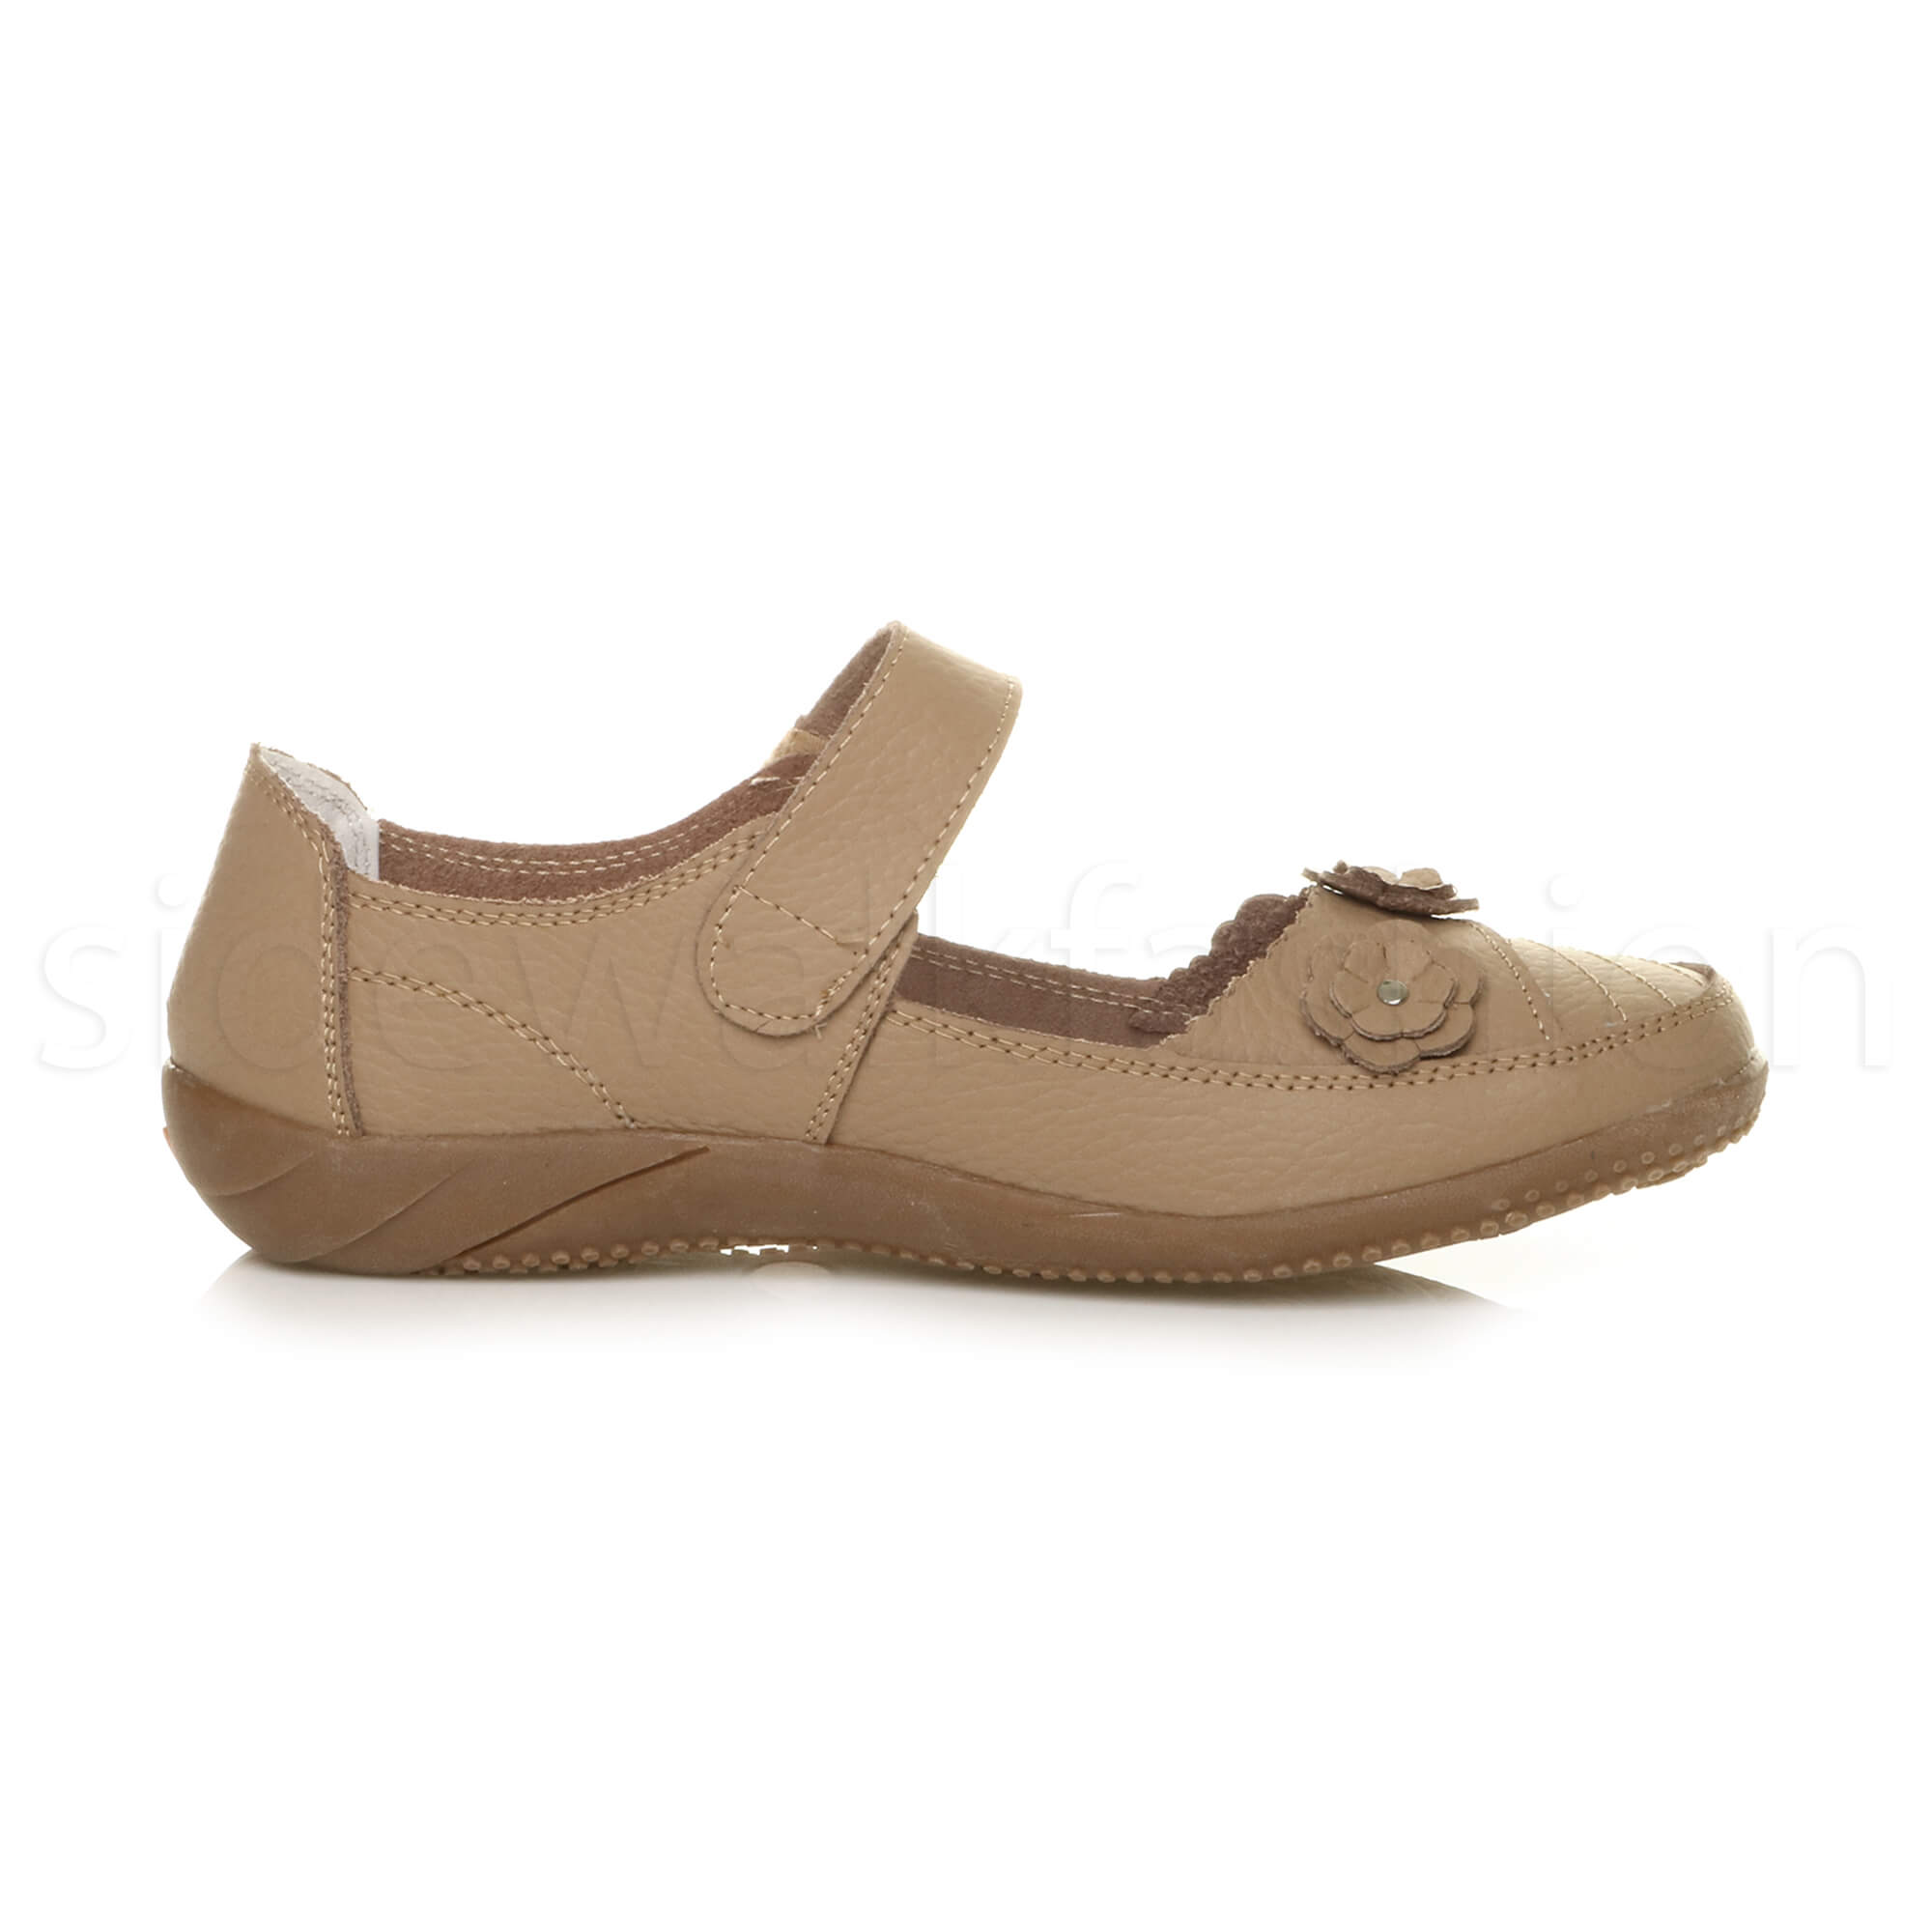 Womens-ladies-leather-comfort-walking-casual-sandals-mary-jane-strap-shoes-size thumbnail 4